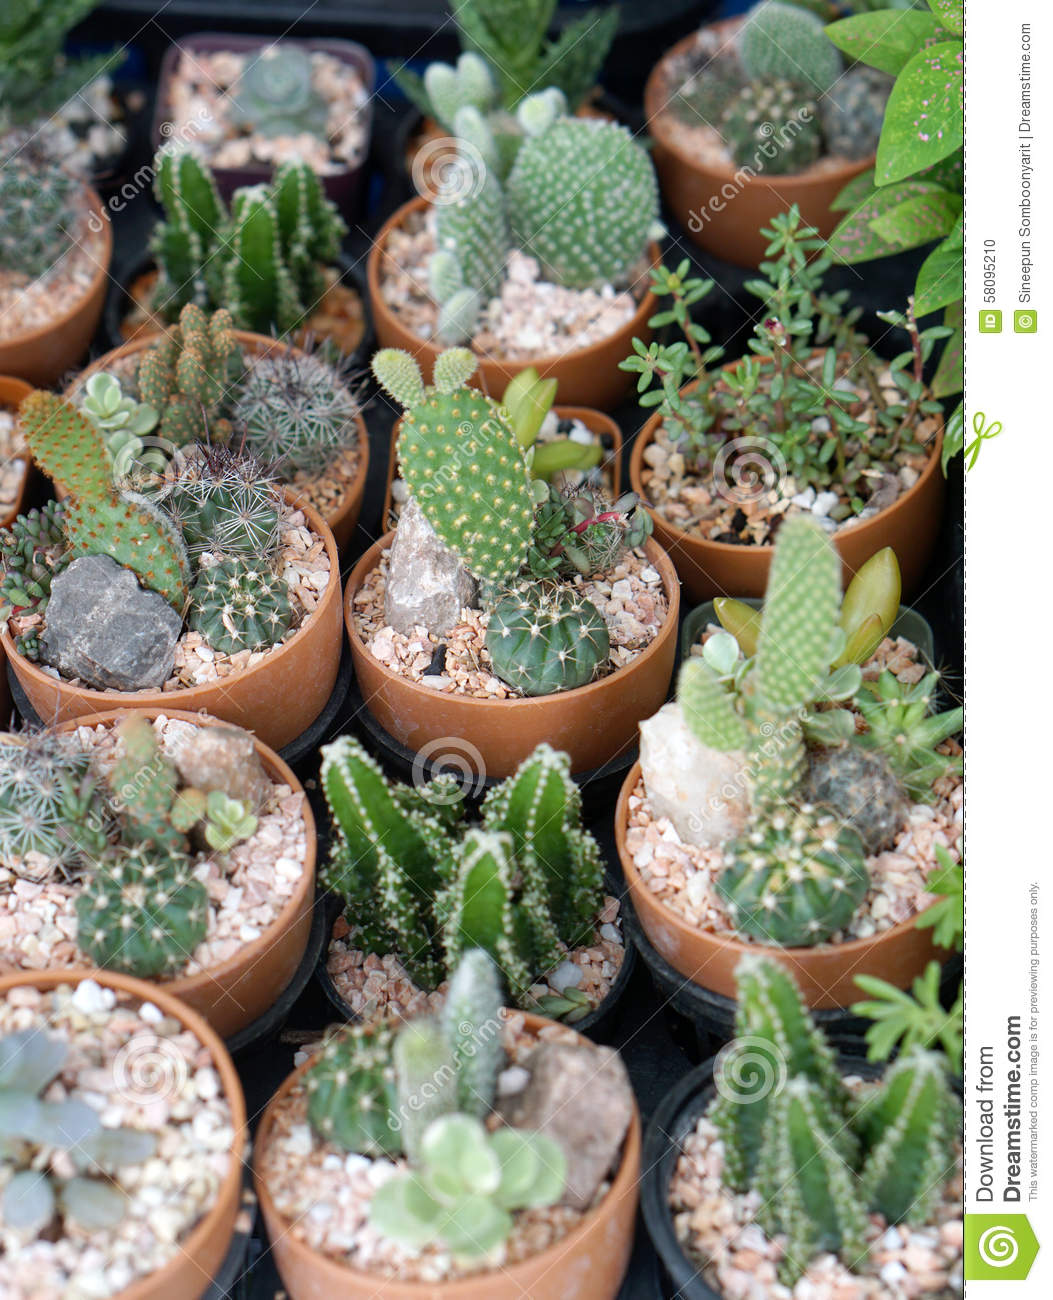 cheap libre de droits with jardin de cactus - Jardn De Cactus